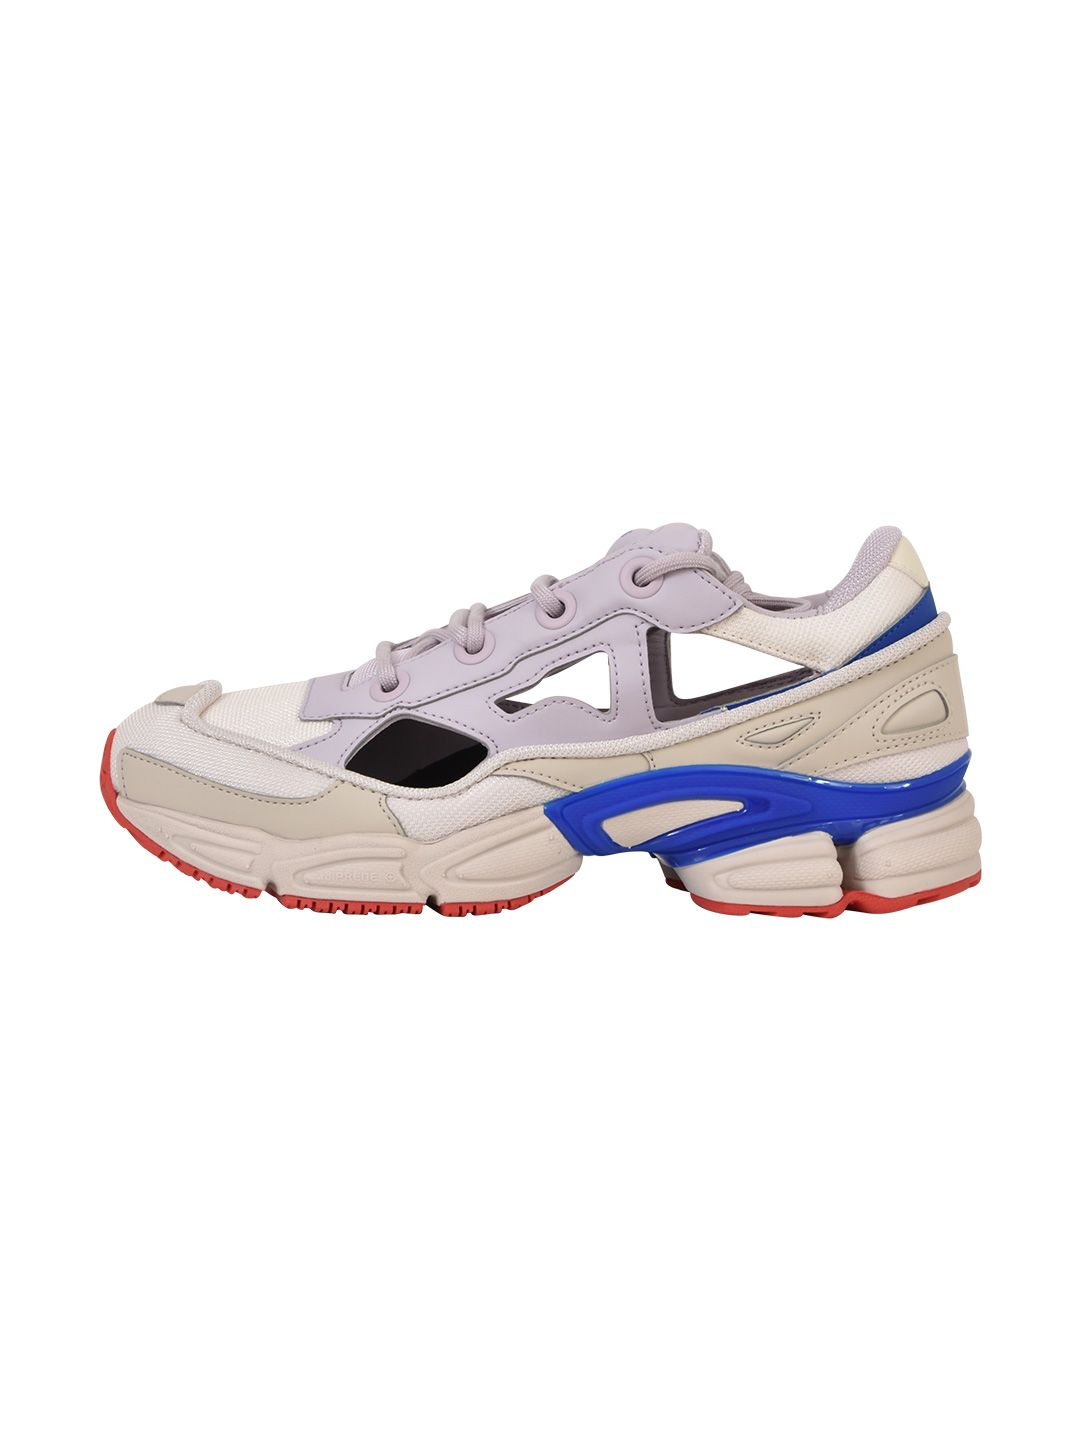 adidas by raf simons -  Rs Replicant Ozweego Sneaker